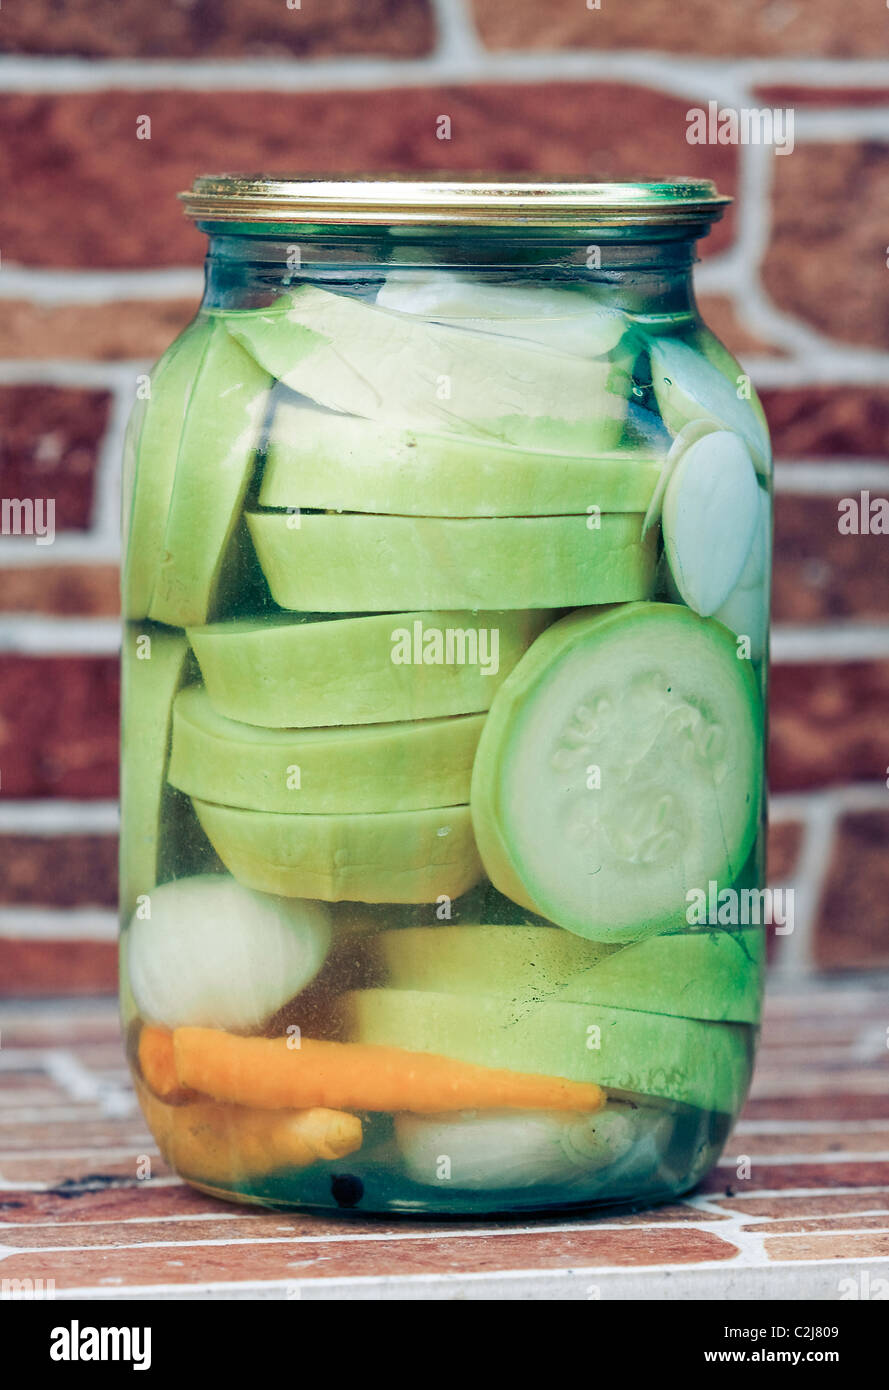 Marinated Vegetables in glass banks - Stock Image